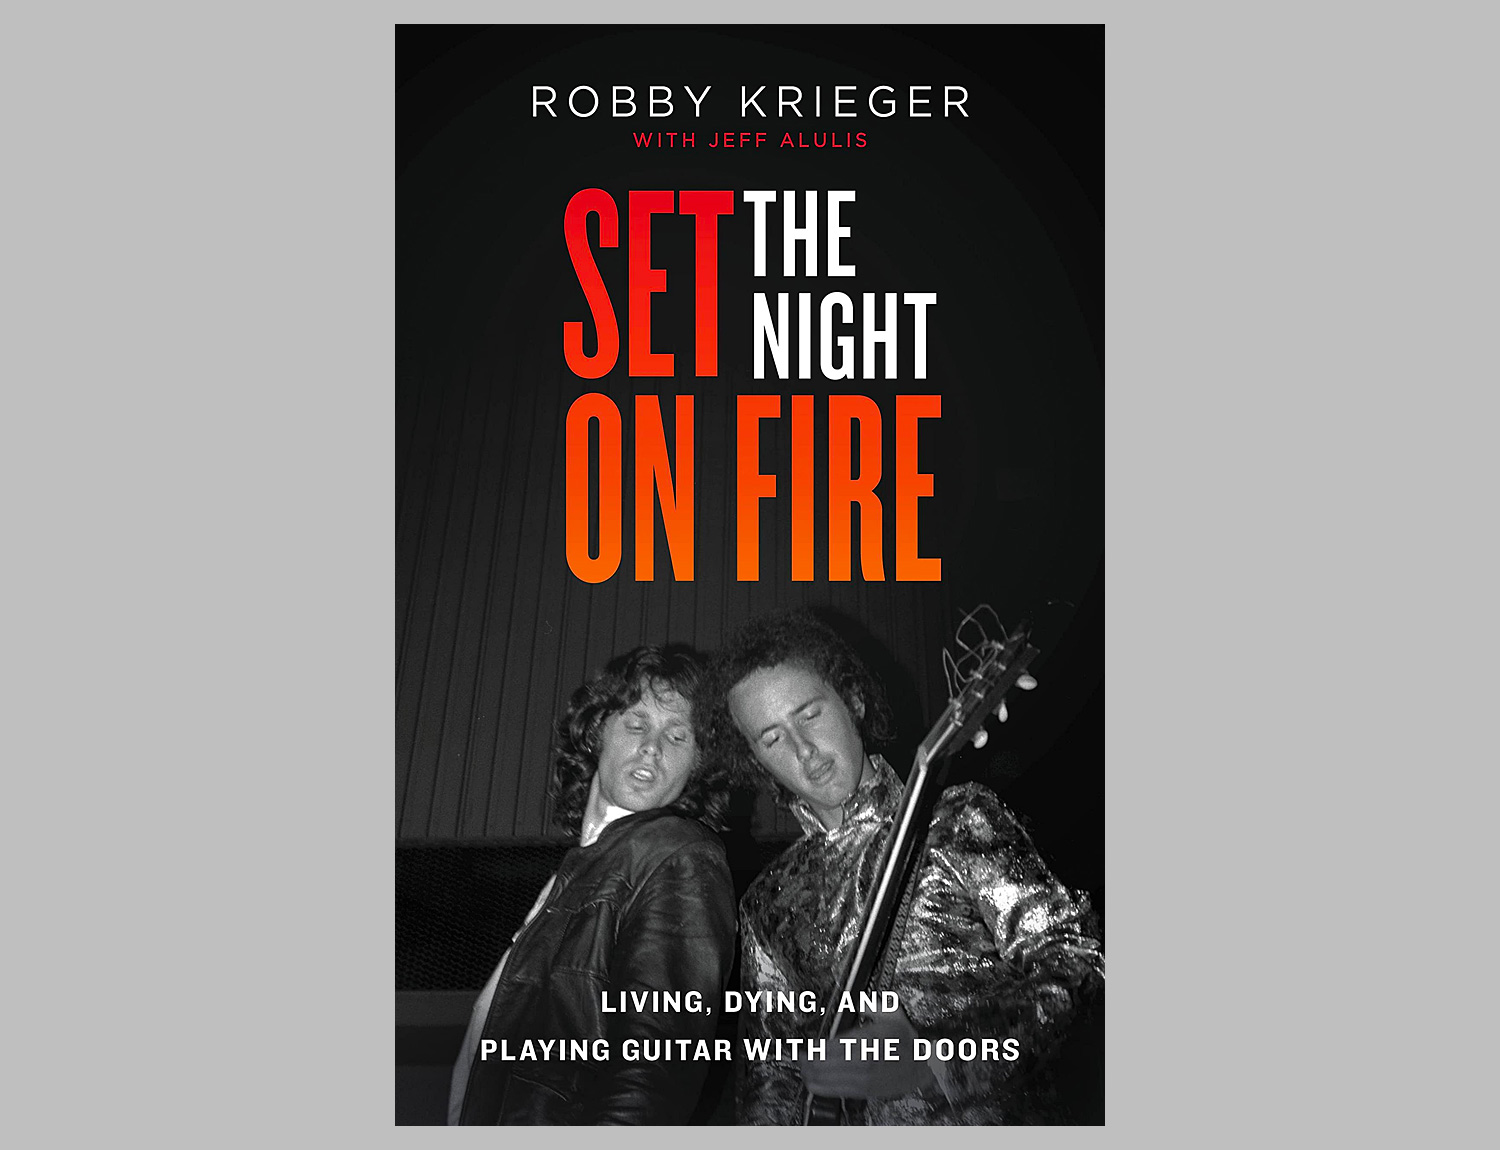 Set the Night on Fire: Living, Dying, and Playing Guitar With the Doors at werd.com